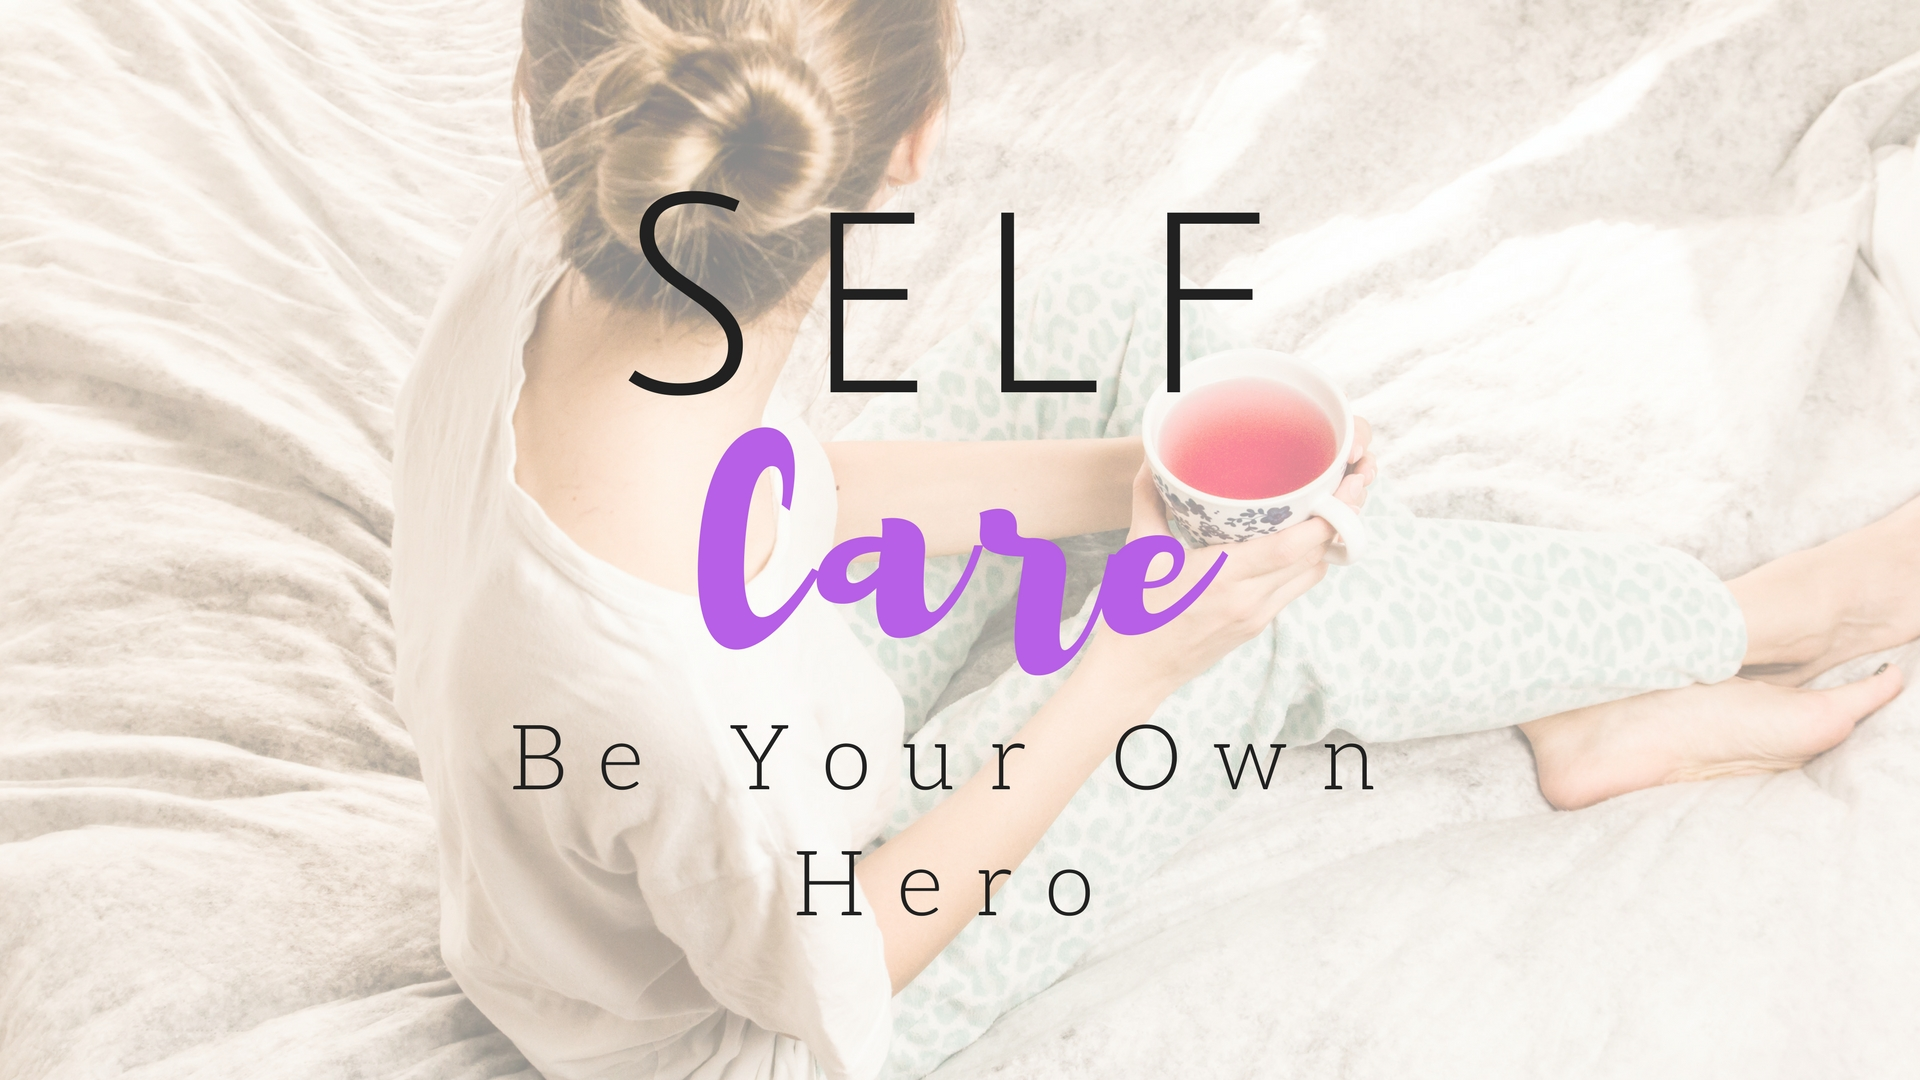 Self Care - Project Get It Together